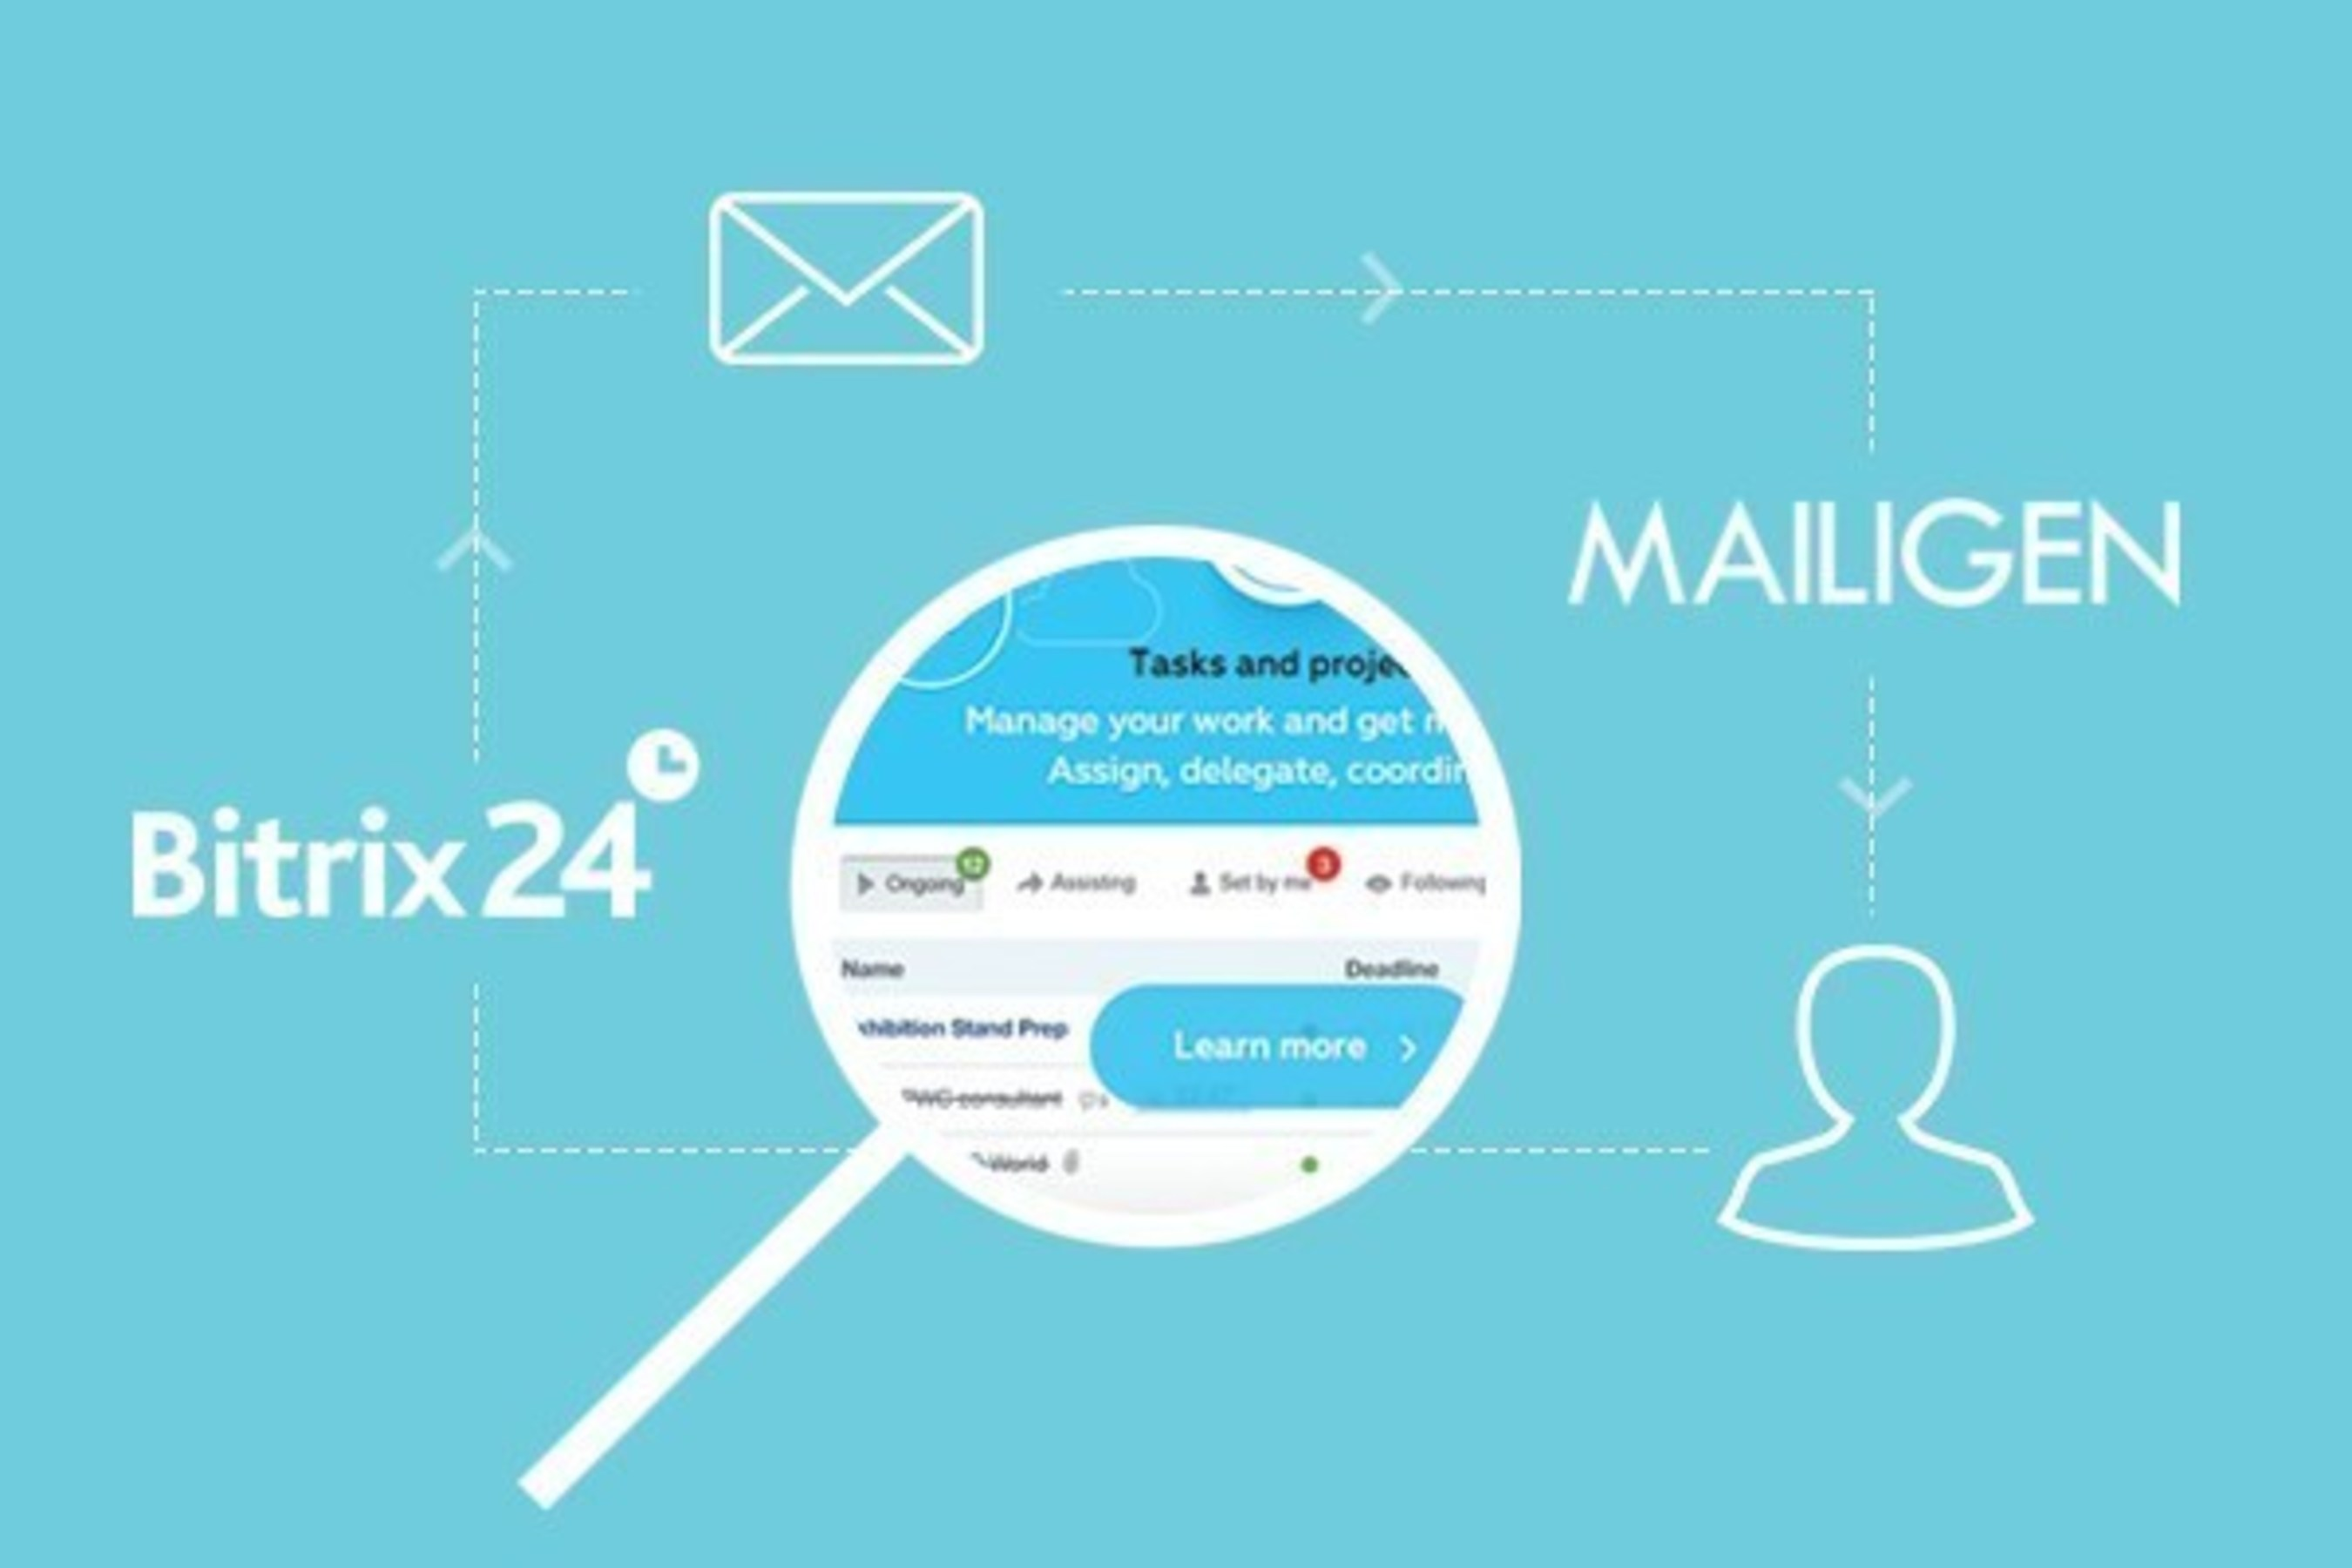 Mailigen Announces Integration With Bitrix24, Creating Seamless Lead Nurturing Experience